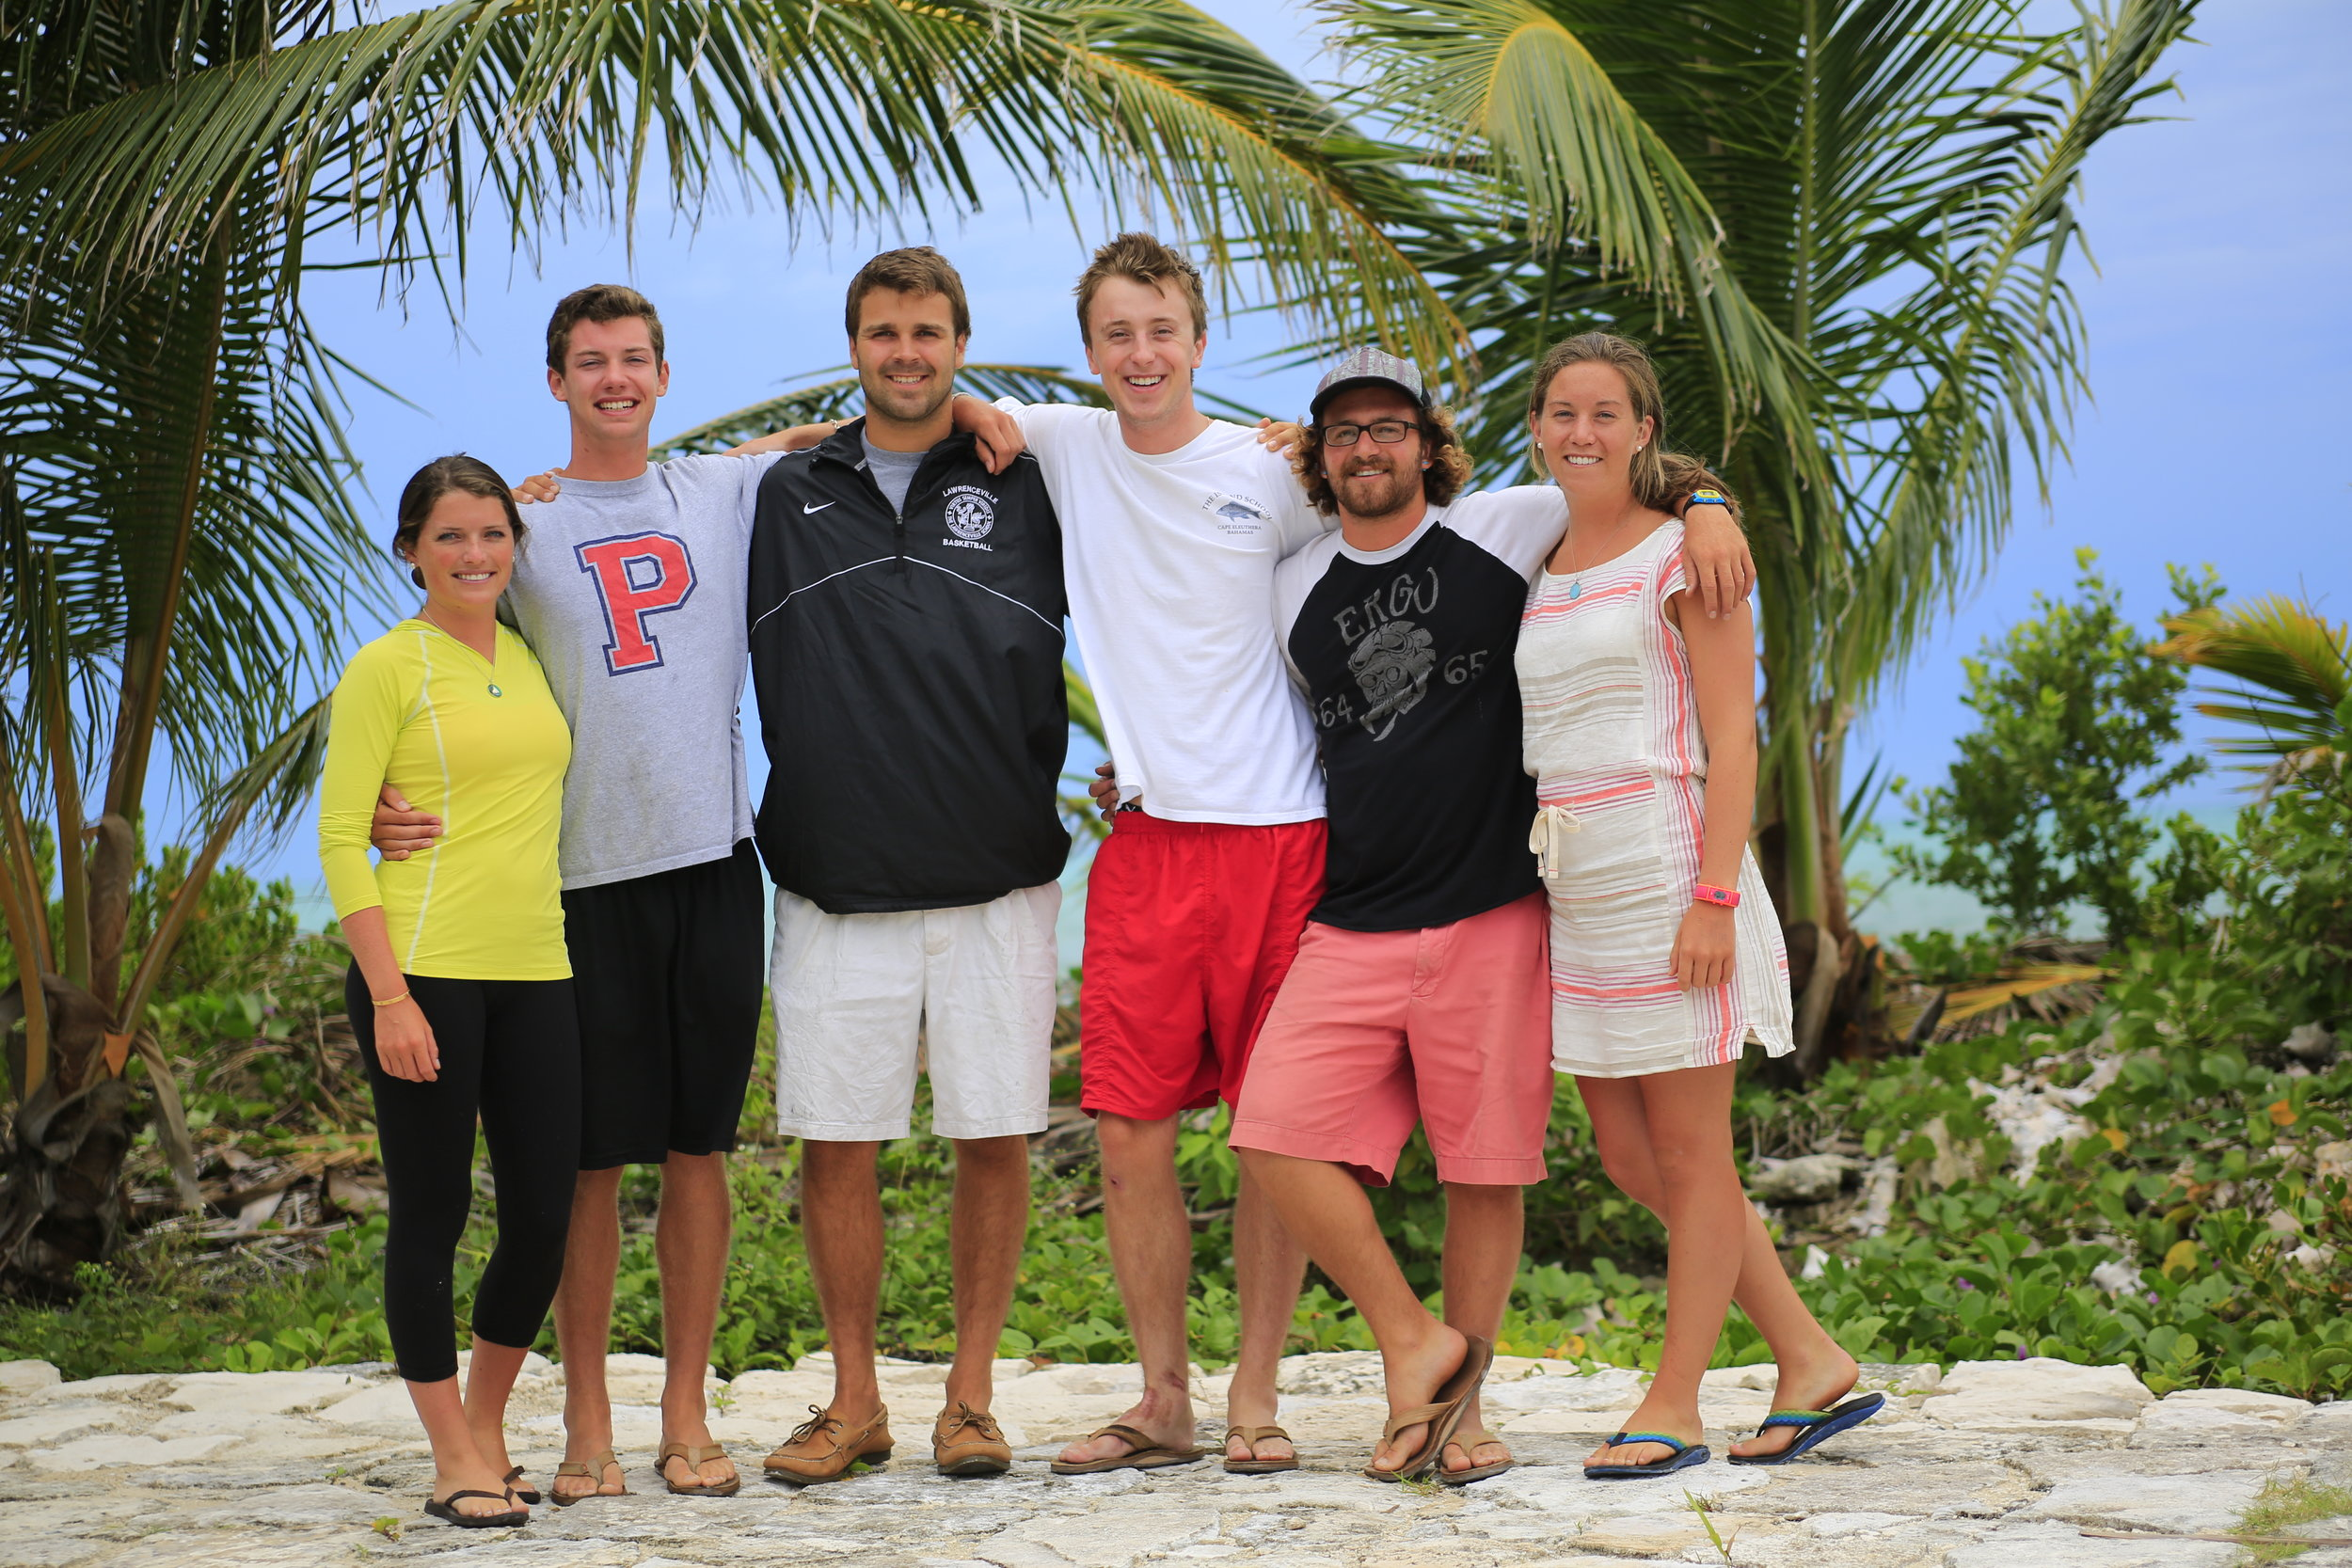 Grace Lucas (S'08), Liam Donovan (F'10), George Giannos (F'10), Griffin Hunt (F'11), Nick Lanza (S'10), Whitney Powel (S'09)